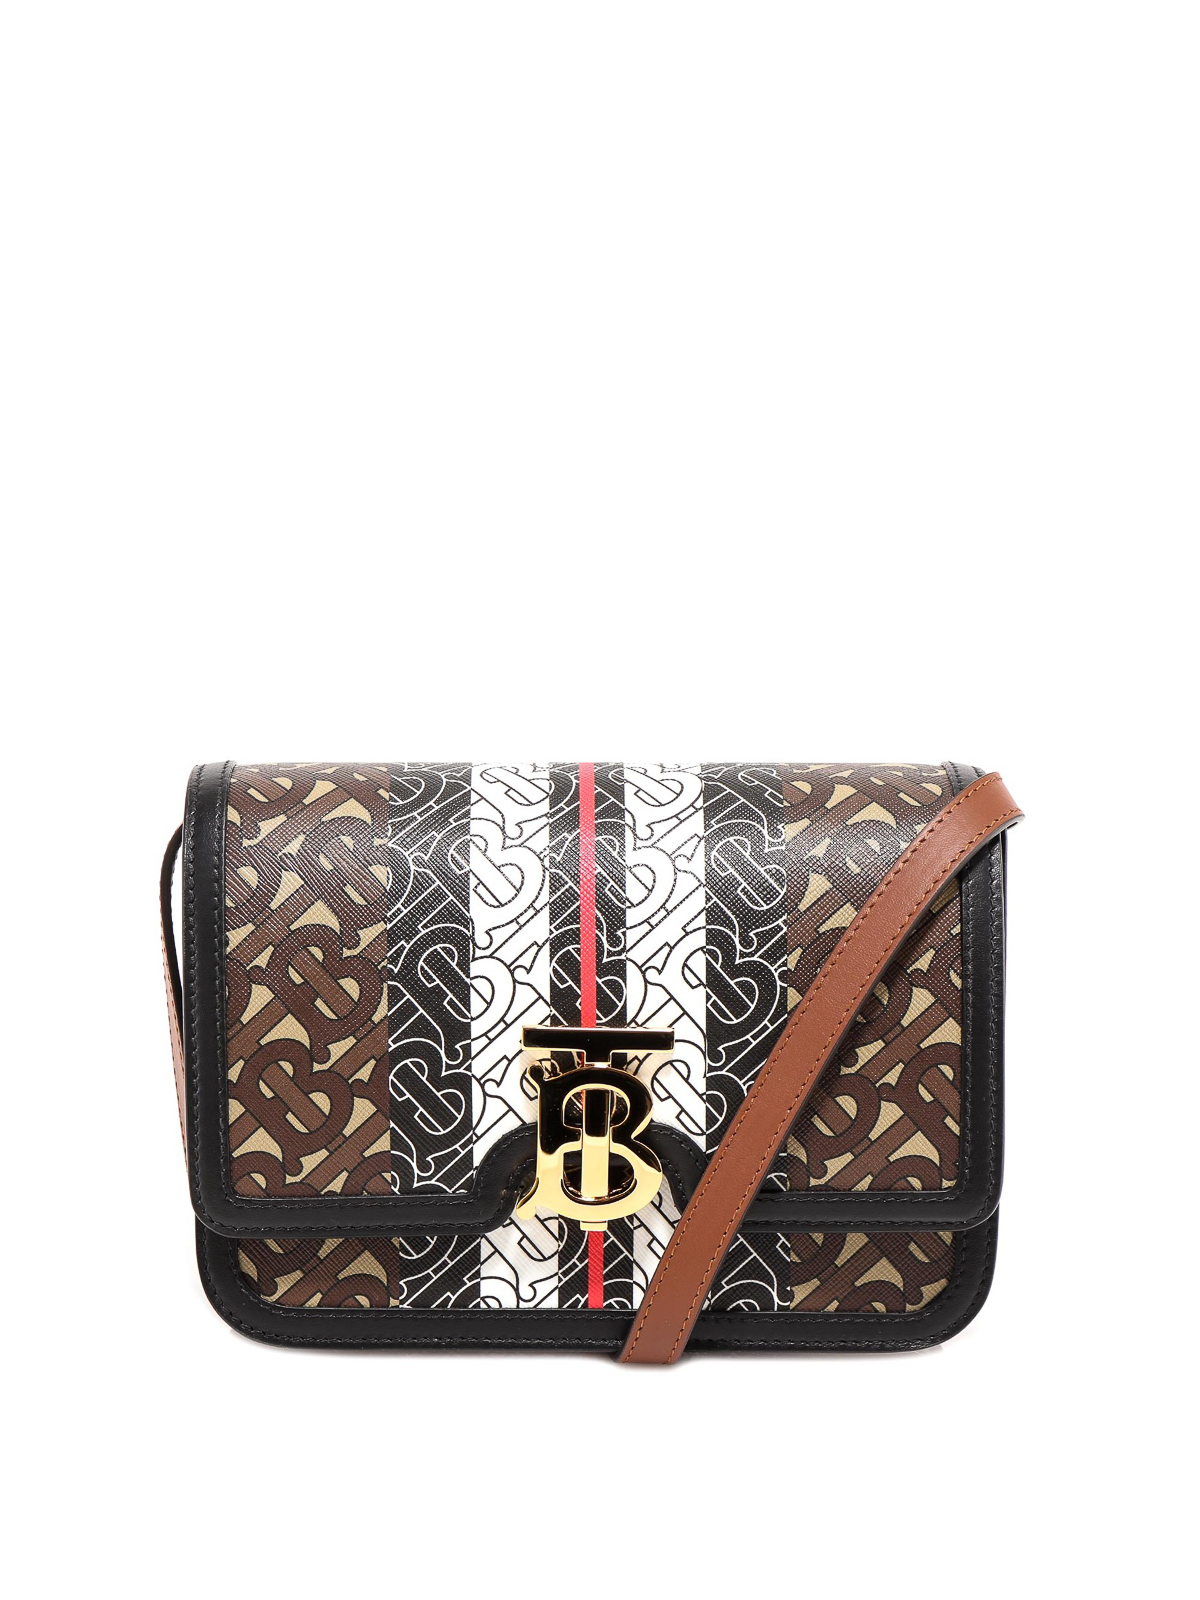 Burberry ALL-OVER TB MONOGRAM PATTERNED E-CANVAS BAG